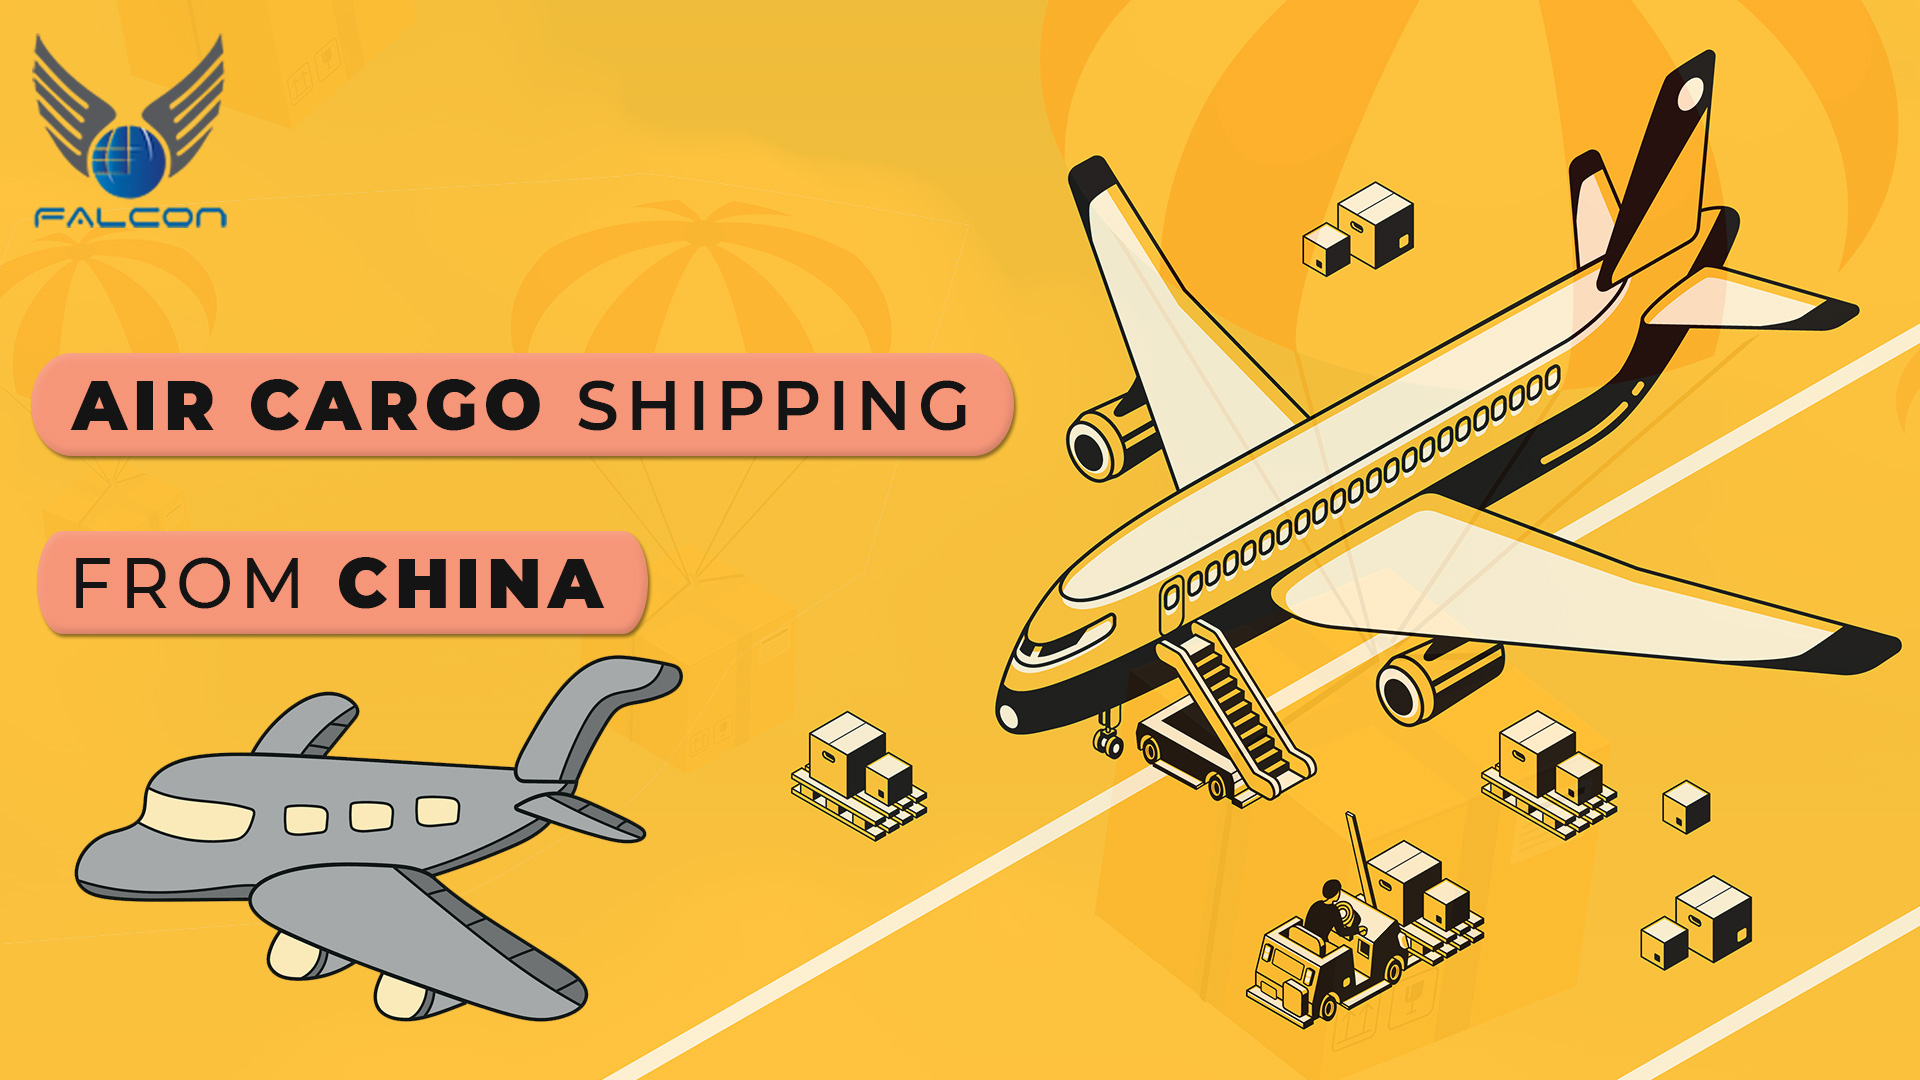 Air cargo shipping from China